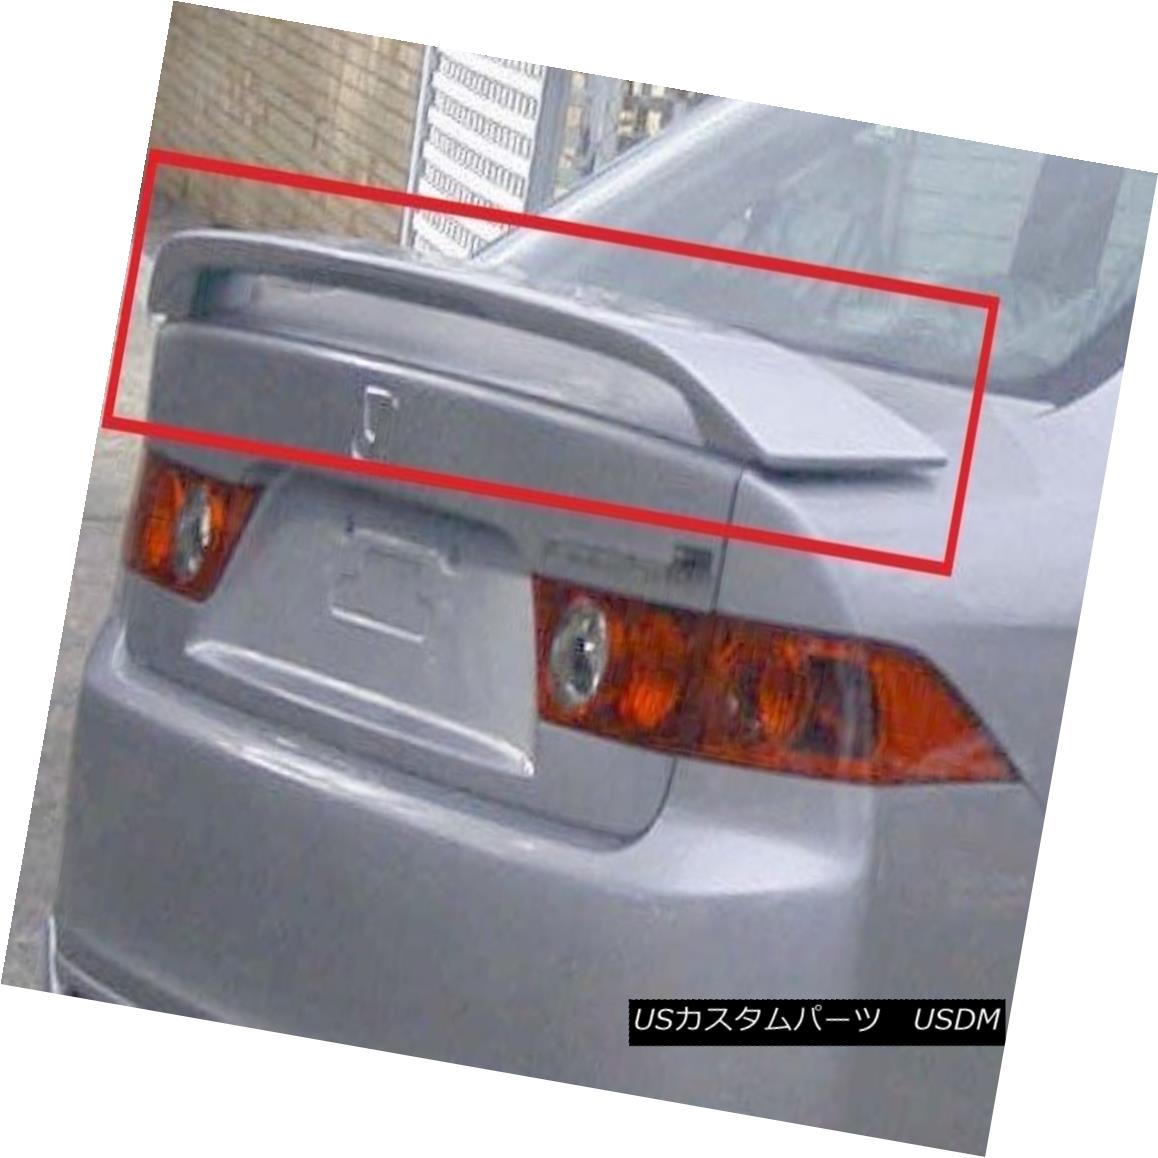 エアロパーツ HONDA ACCORD 7 MK7 2002-2008 REAR BOOT TRUNK SPOILER NEW HONDA ACCORD 7 MK7 2002-2008 REAR BOOT TRUNK SPOILER NEW